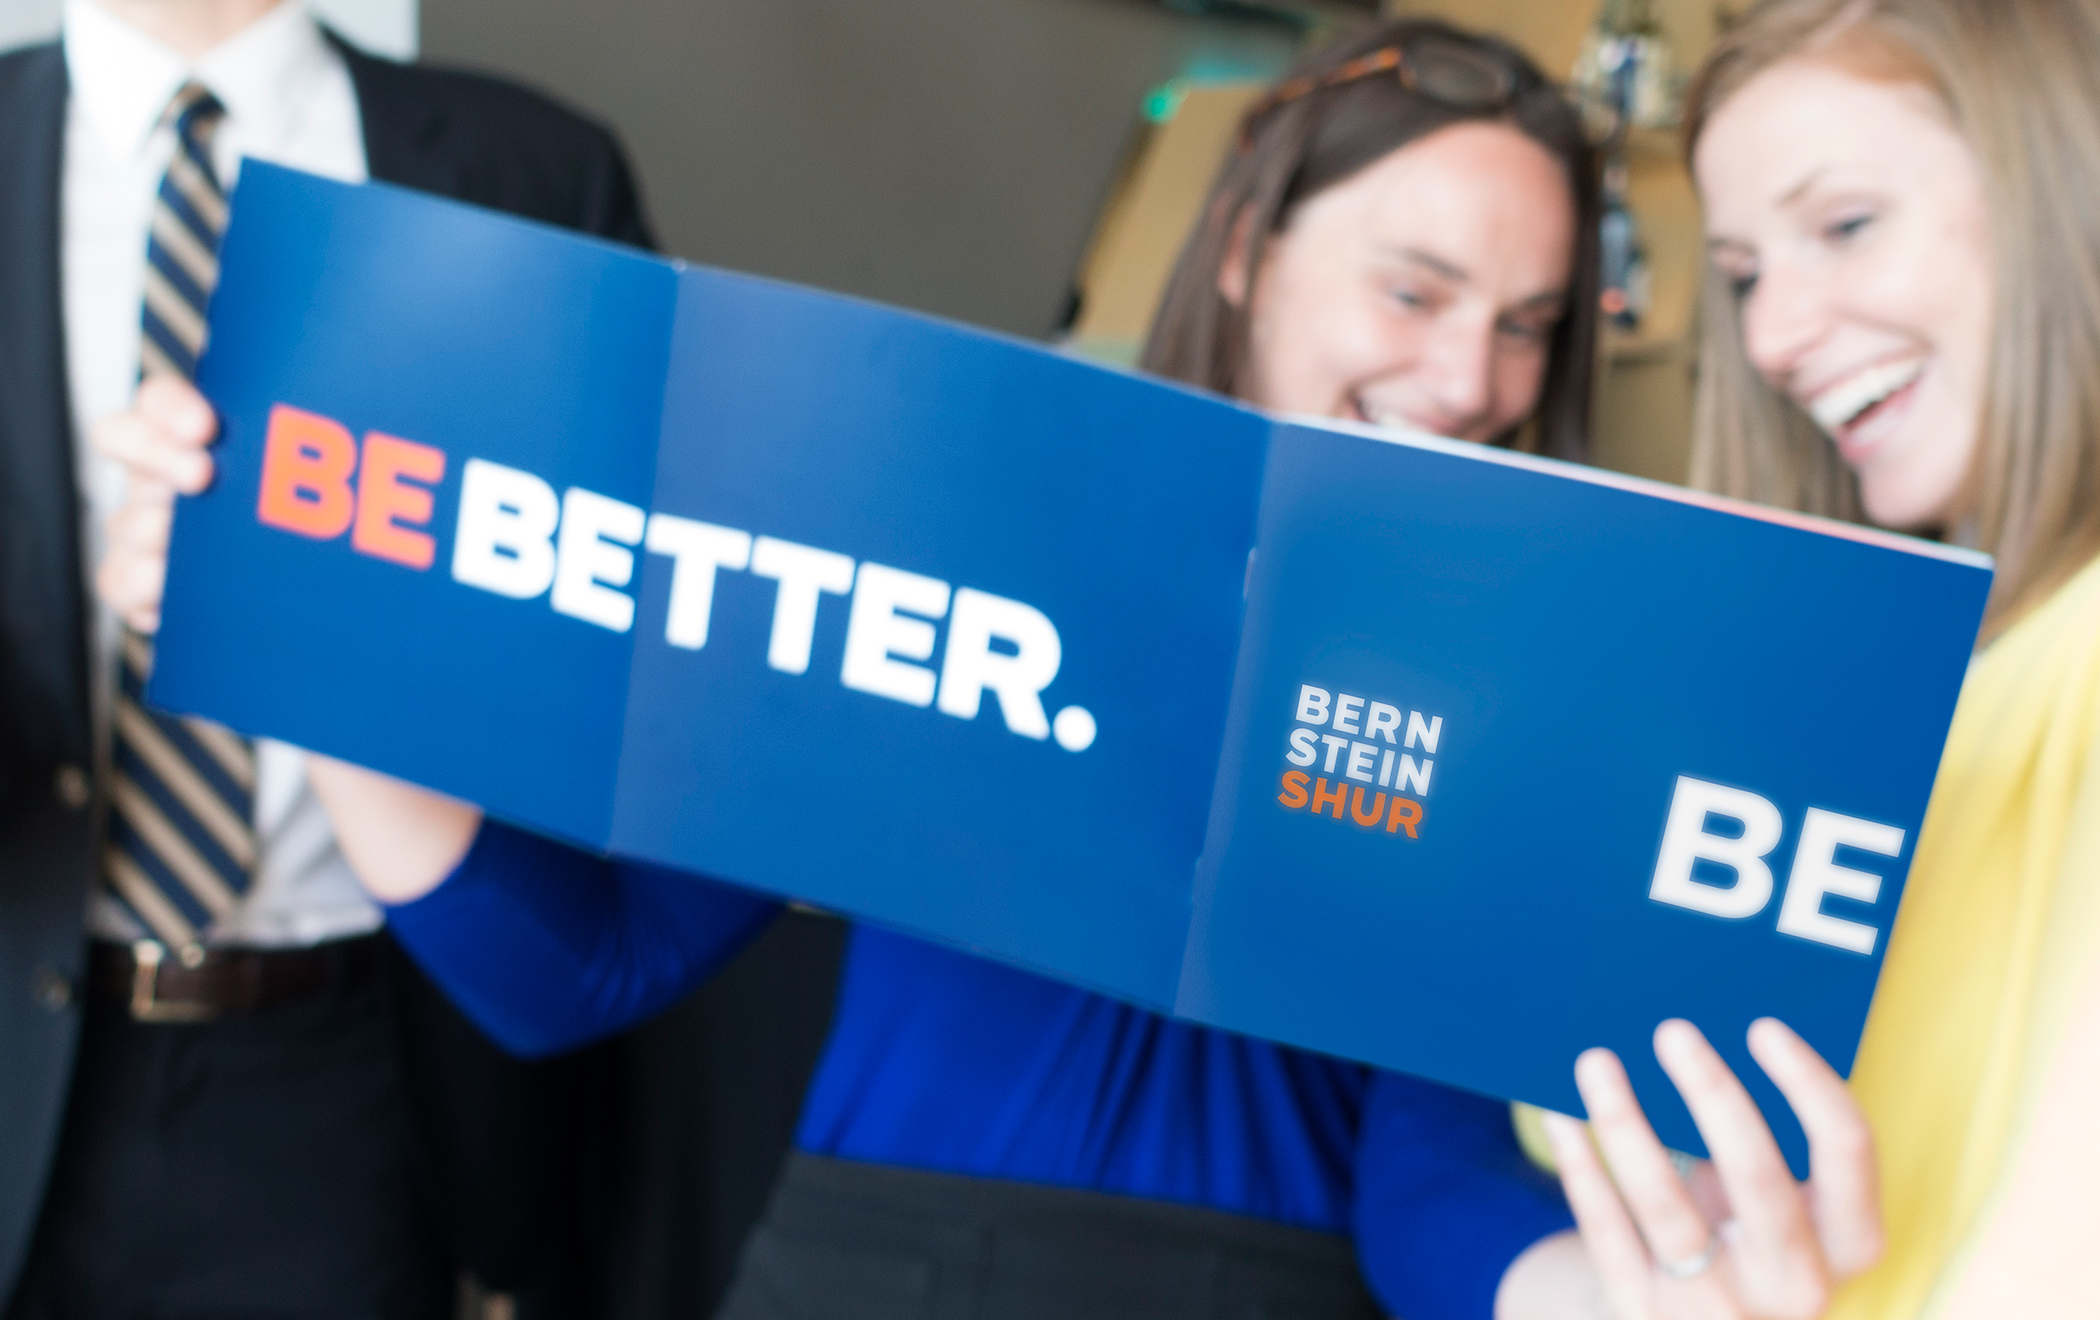 """Two employees holding and looking at an opened Bernstein Shur brand spirit booklet with the title """"Be better."""""""